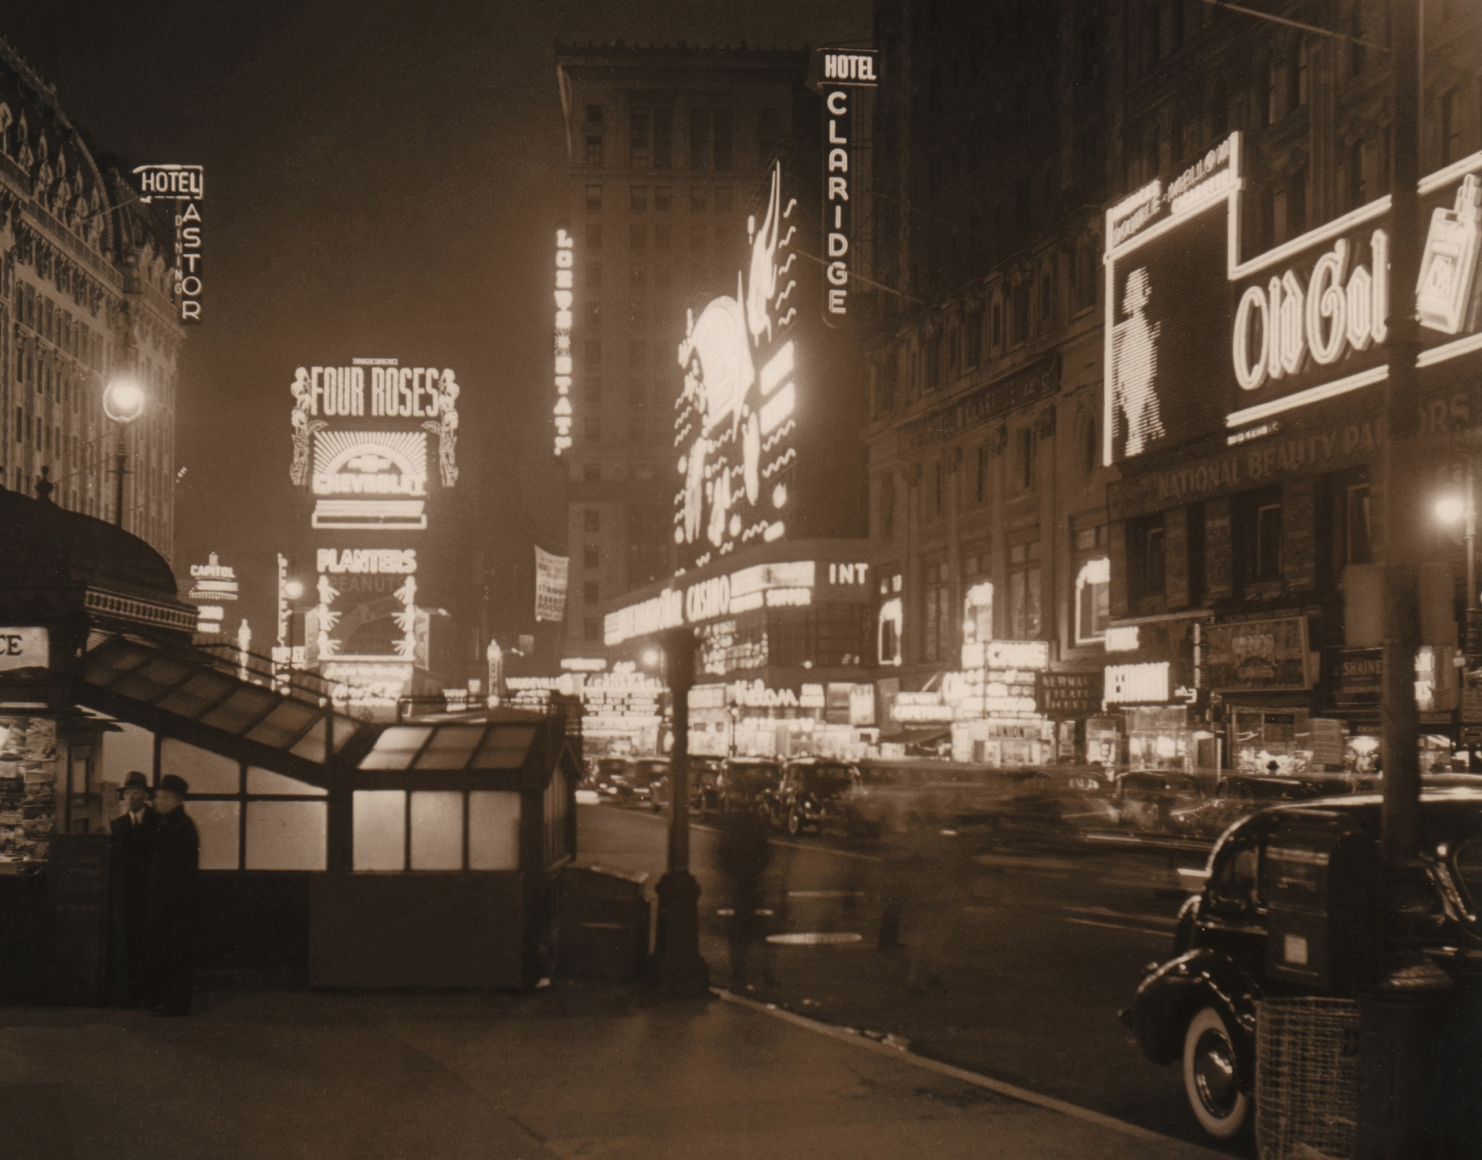 Paul J. Woolf, Broadway, c. 1935. Night time street scene featuring lit neon hotel, casino, and advertising signs.